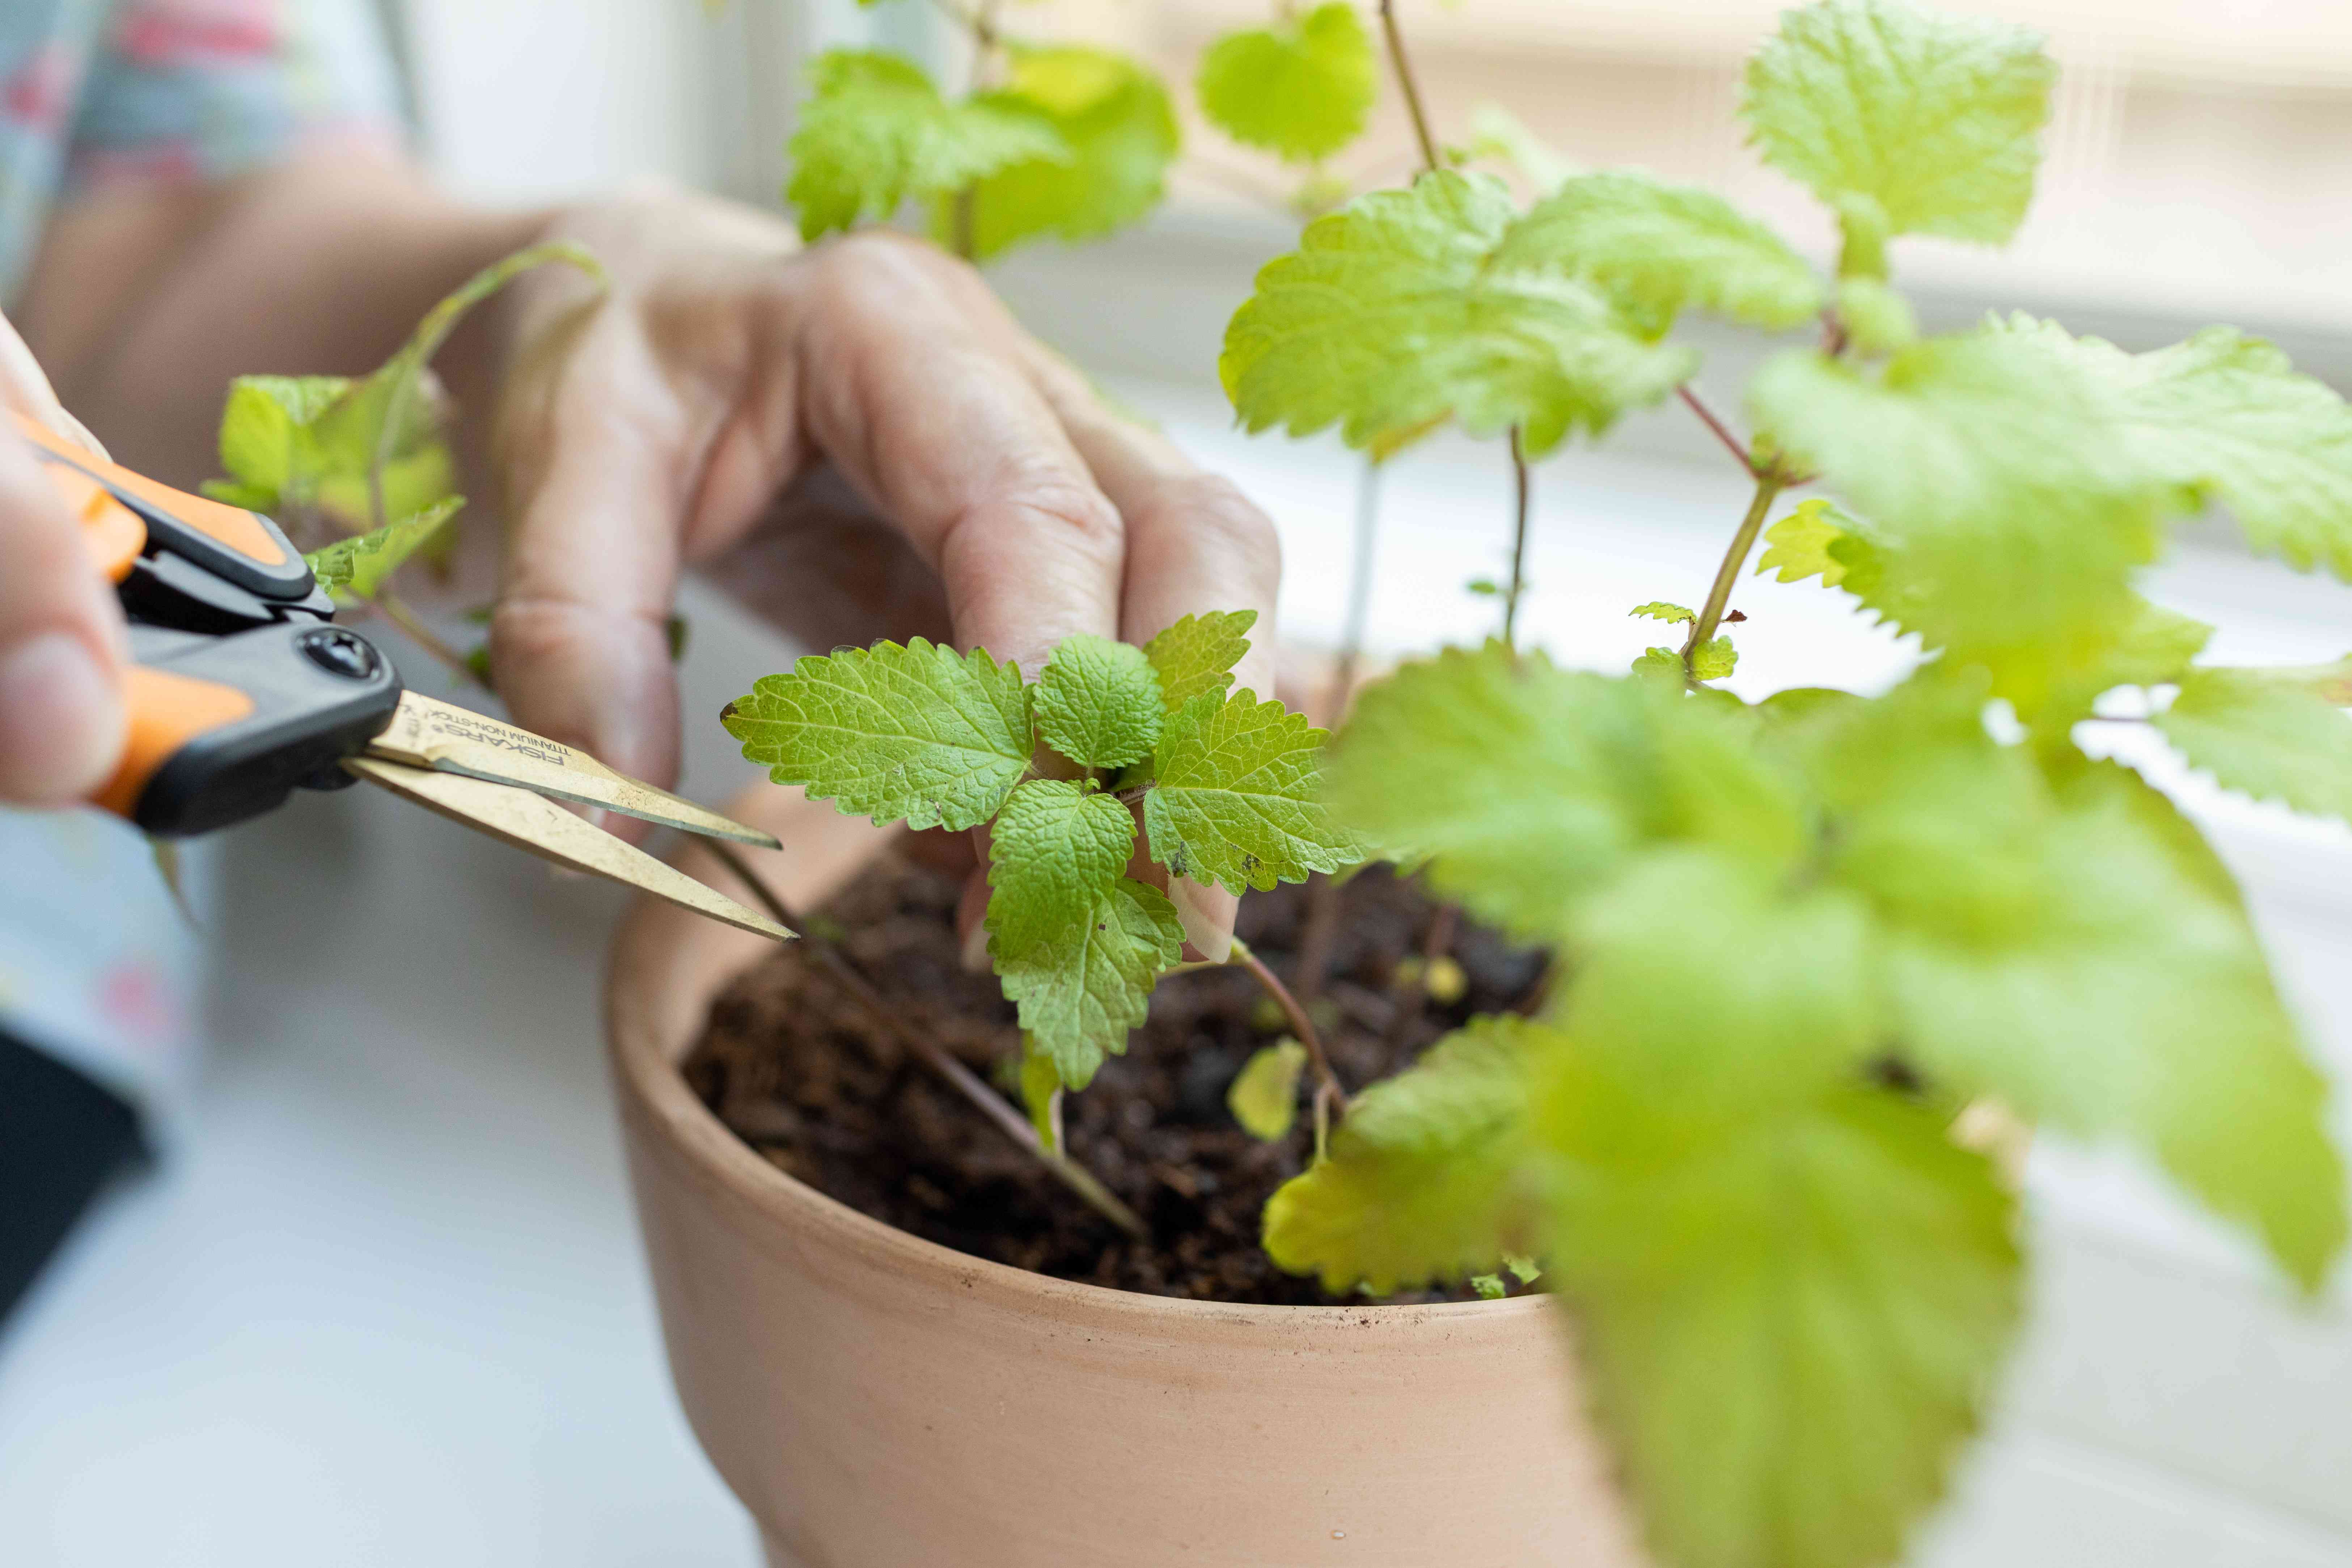 person with small gardening scissors cuts leaves off lemon balm plant inside